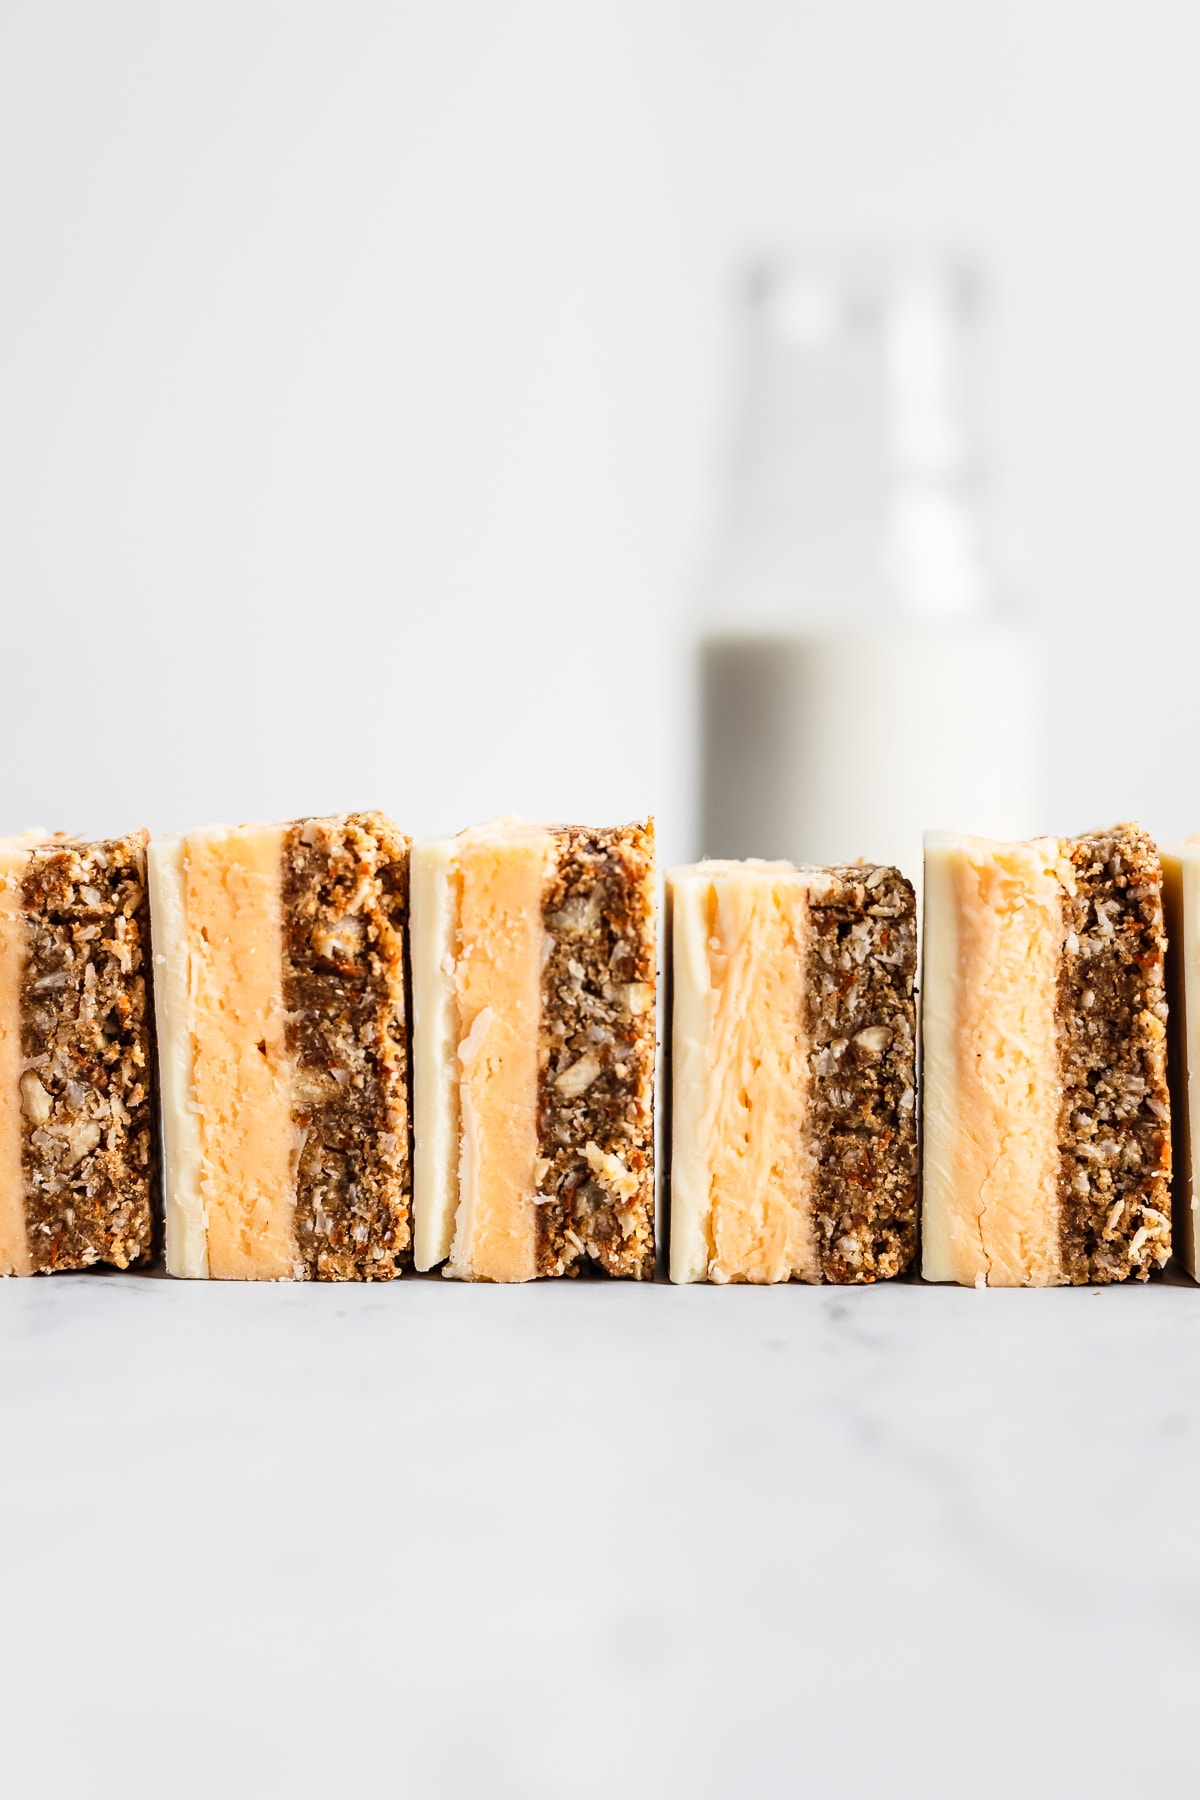 A row of sliced carrot cake bars turned on their side and lined up like dominos on a white marble surface with a glass bottle of milk in the background